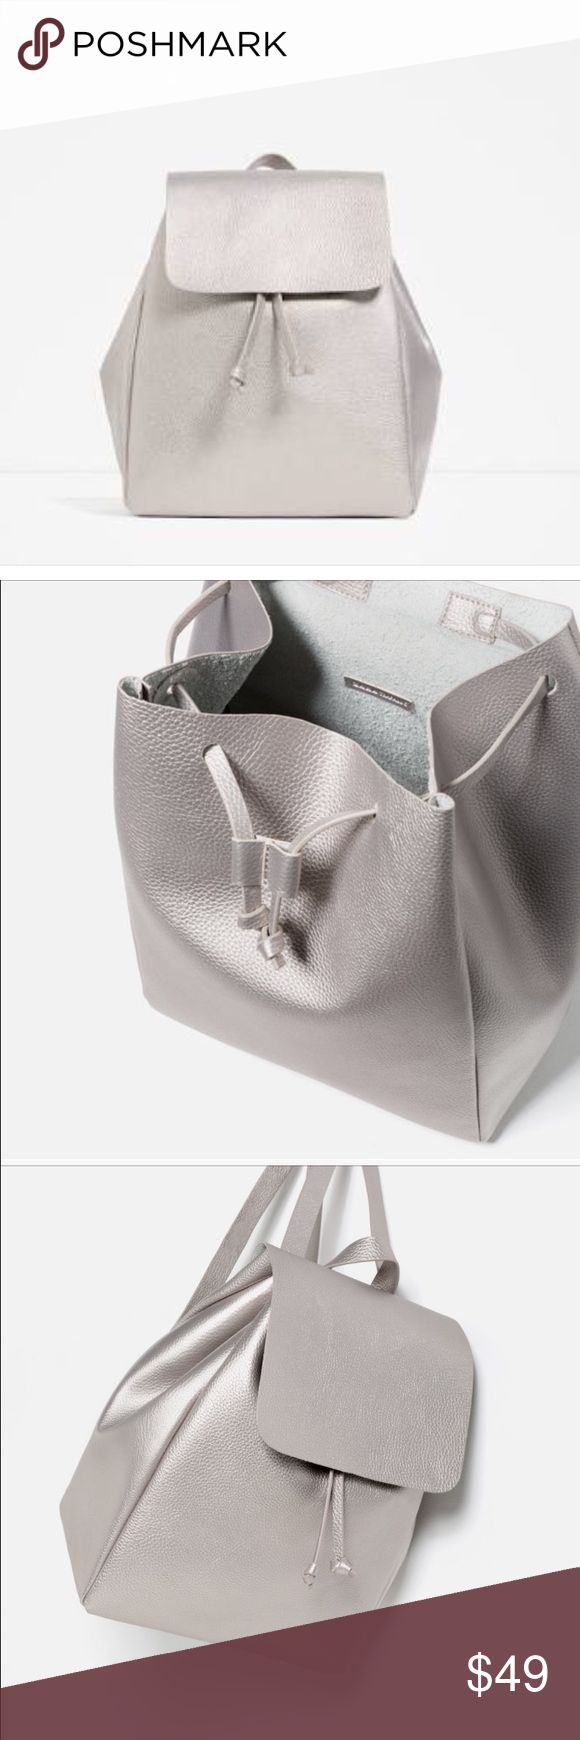 Zara TRF Silver Backpack No tags but brand new Zara Bags Backpacks